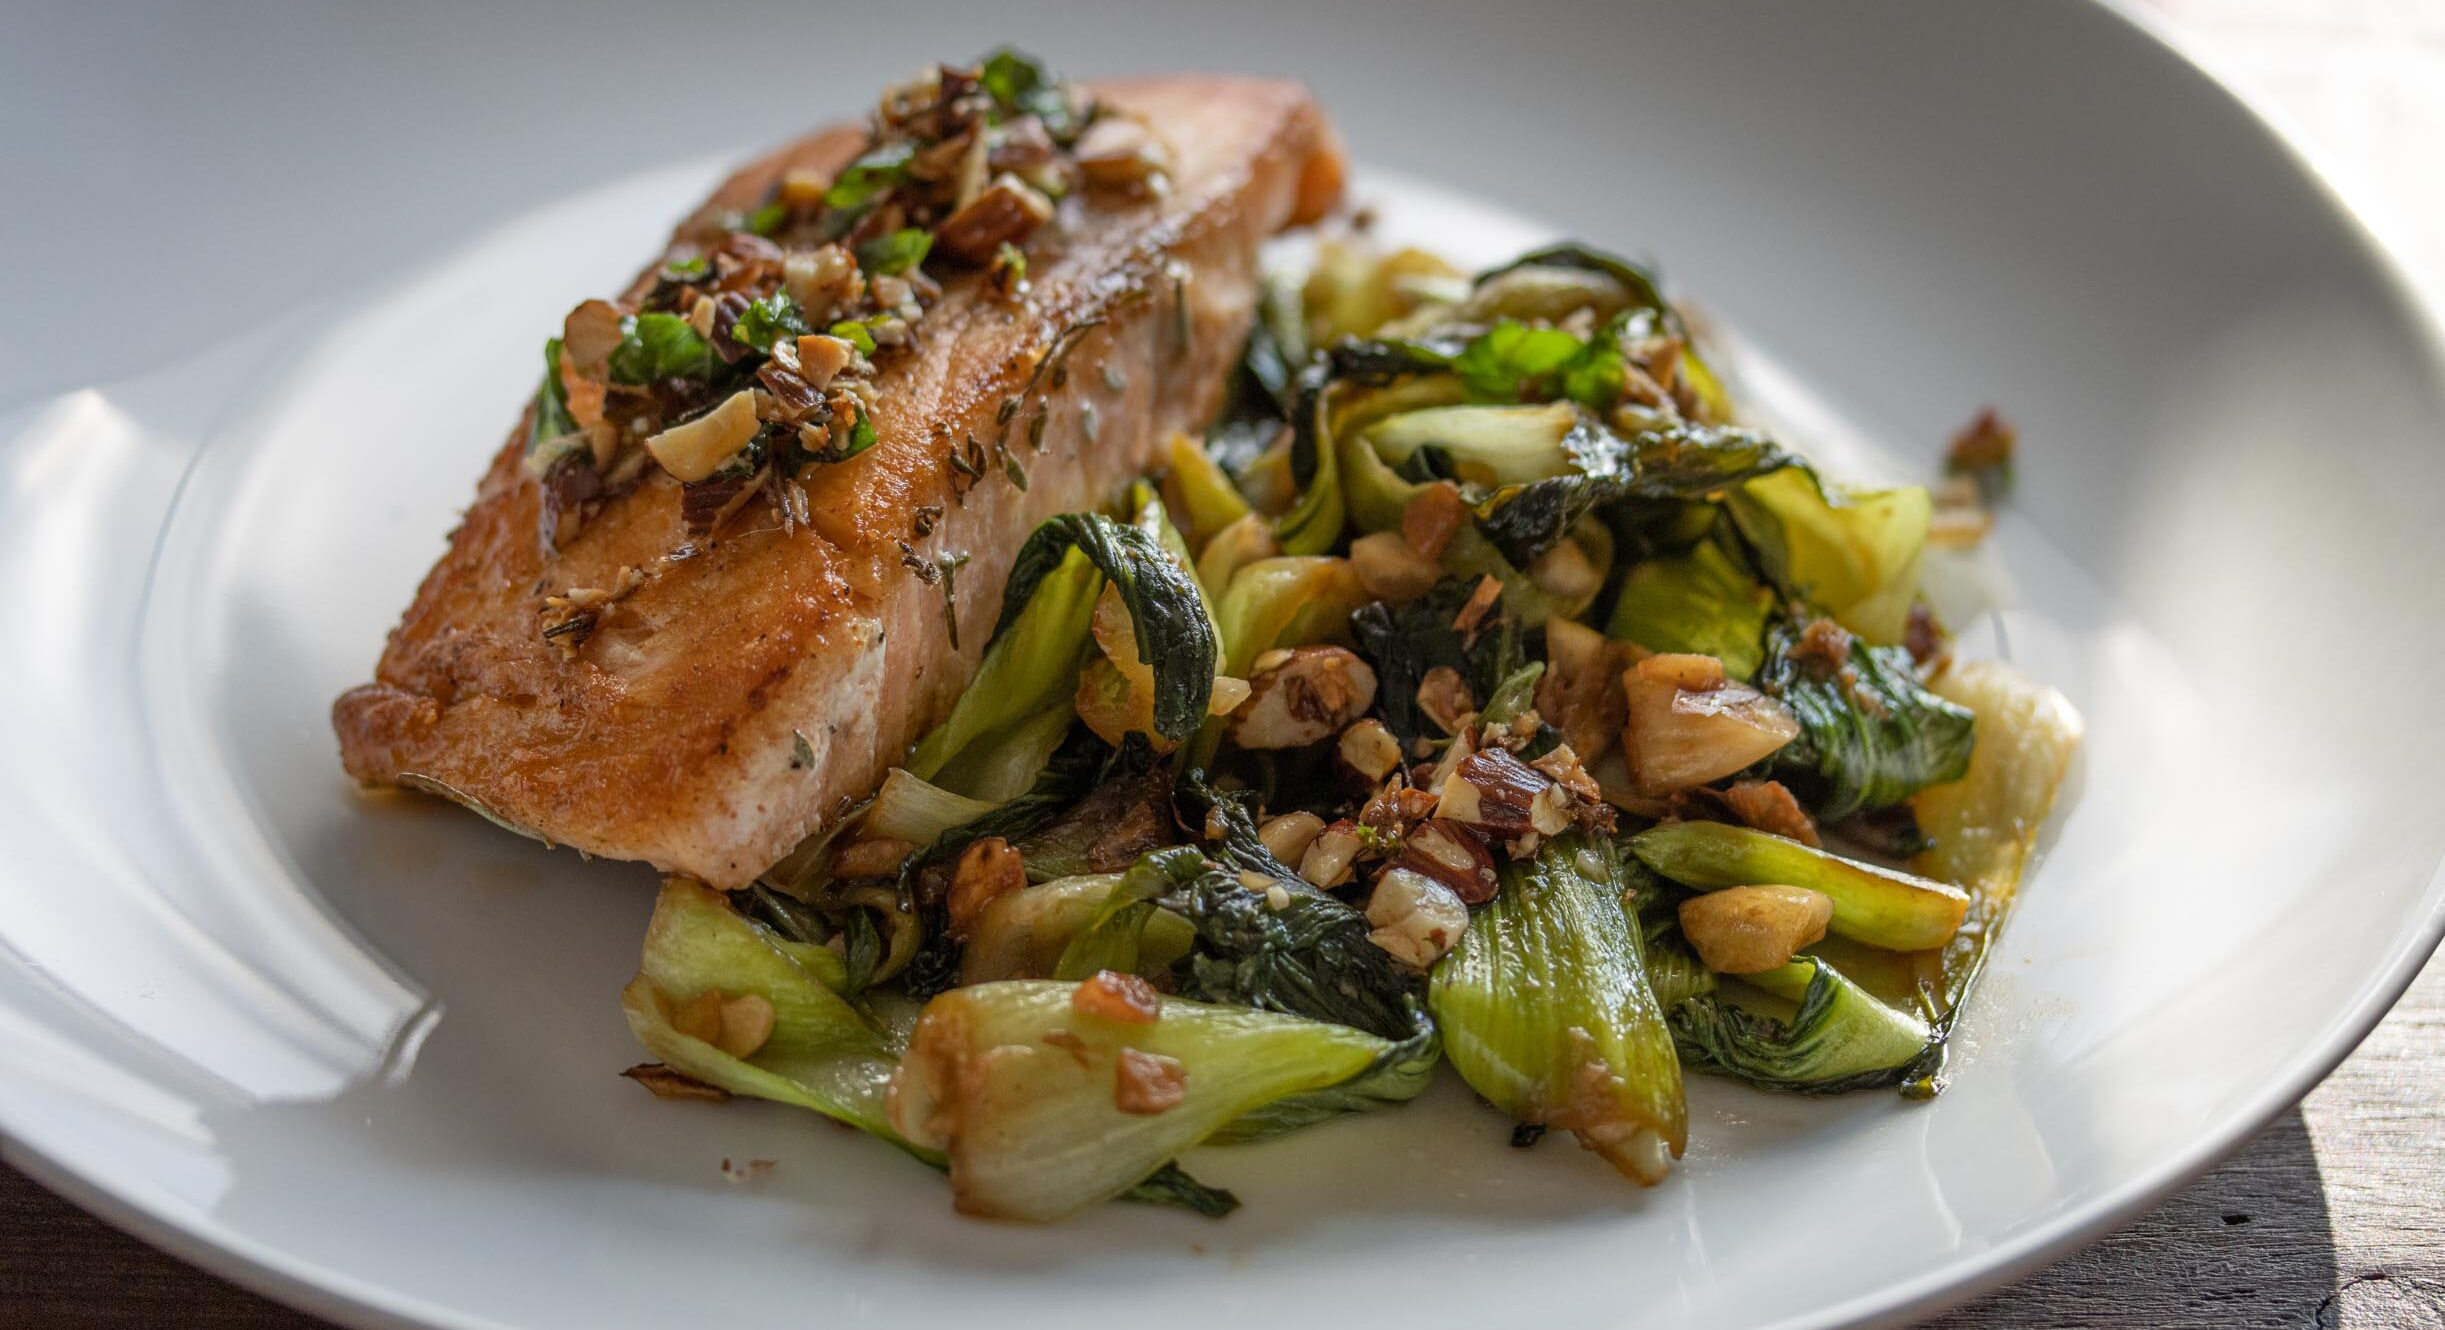 Salmon with steamed bok choy and almond